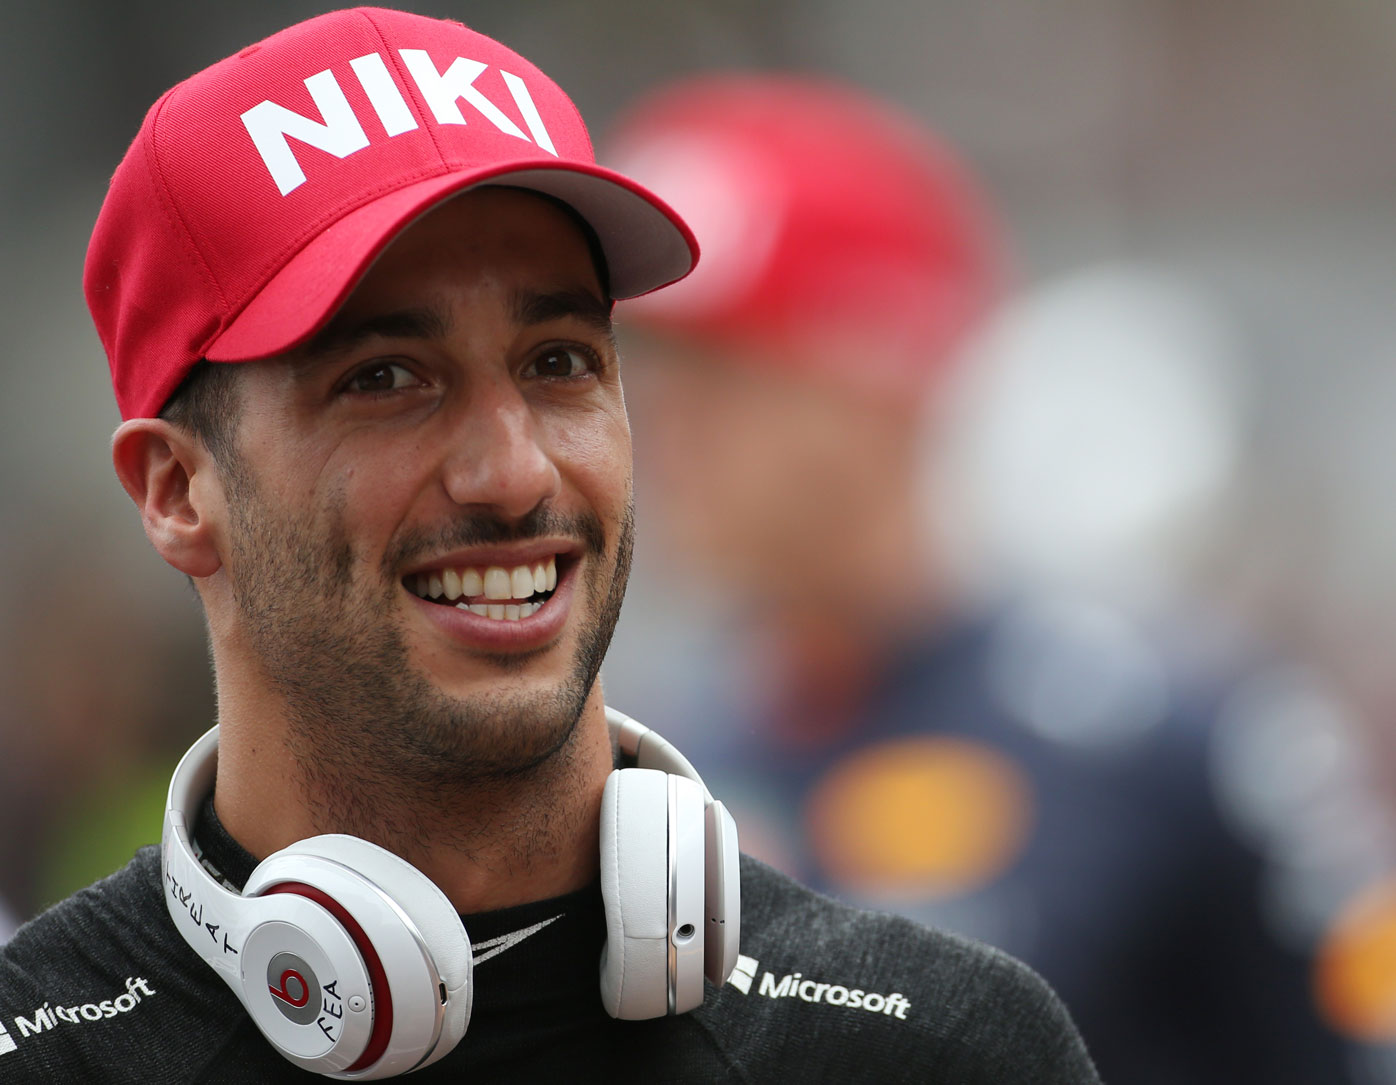 'I was furious': The moment Ricciardo decided to leave